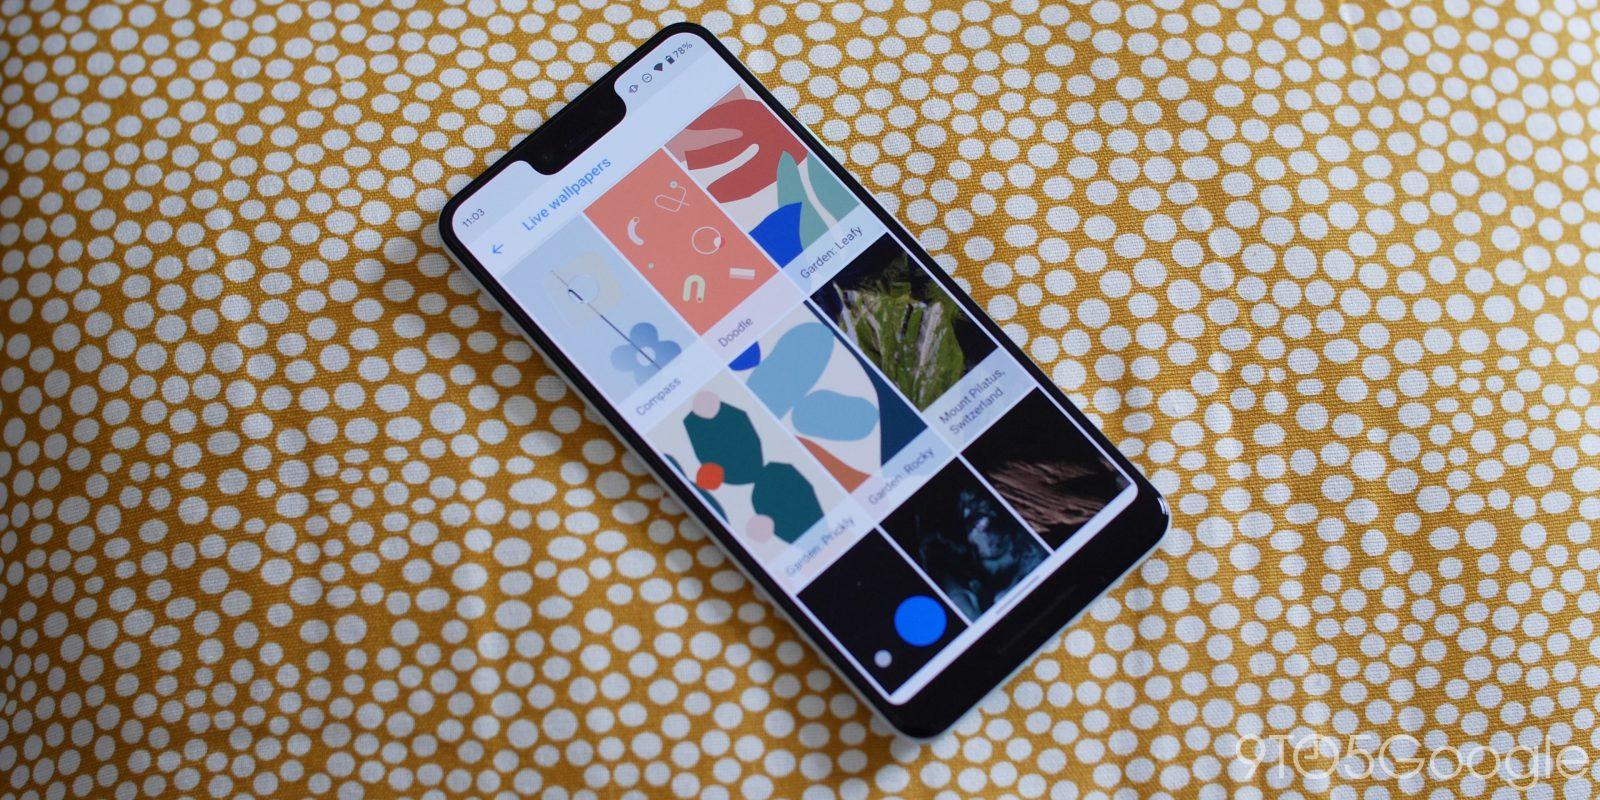 Hands On With The New Google Pixel 4 Live Wallpapers Video